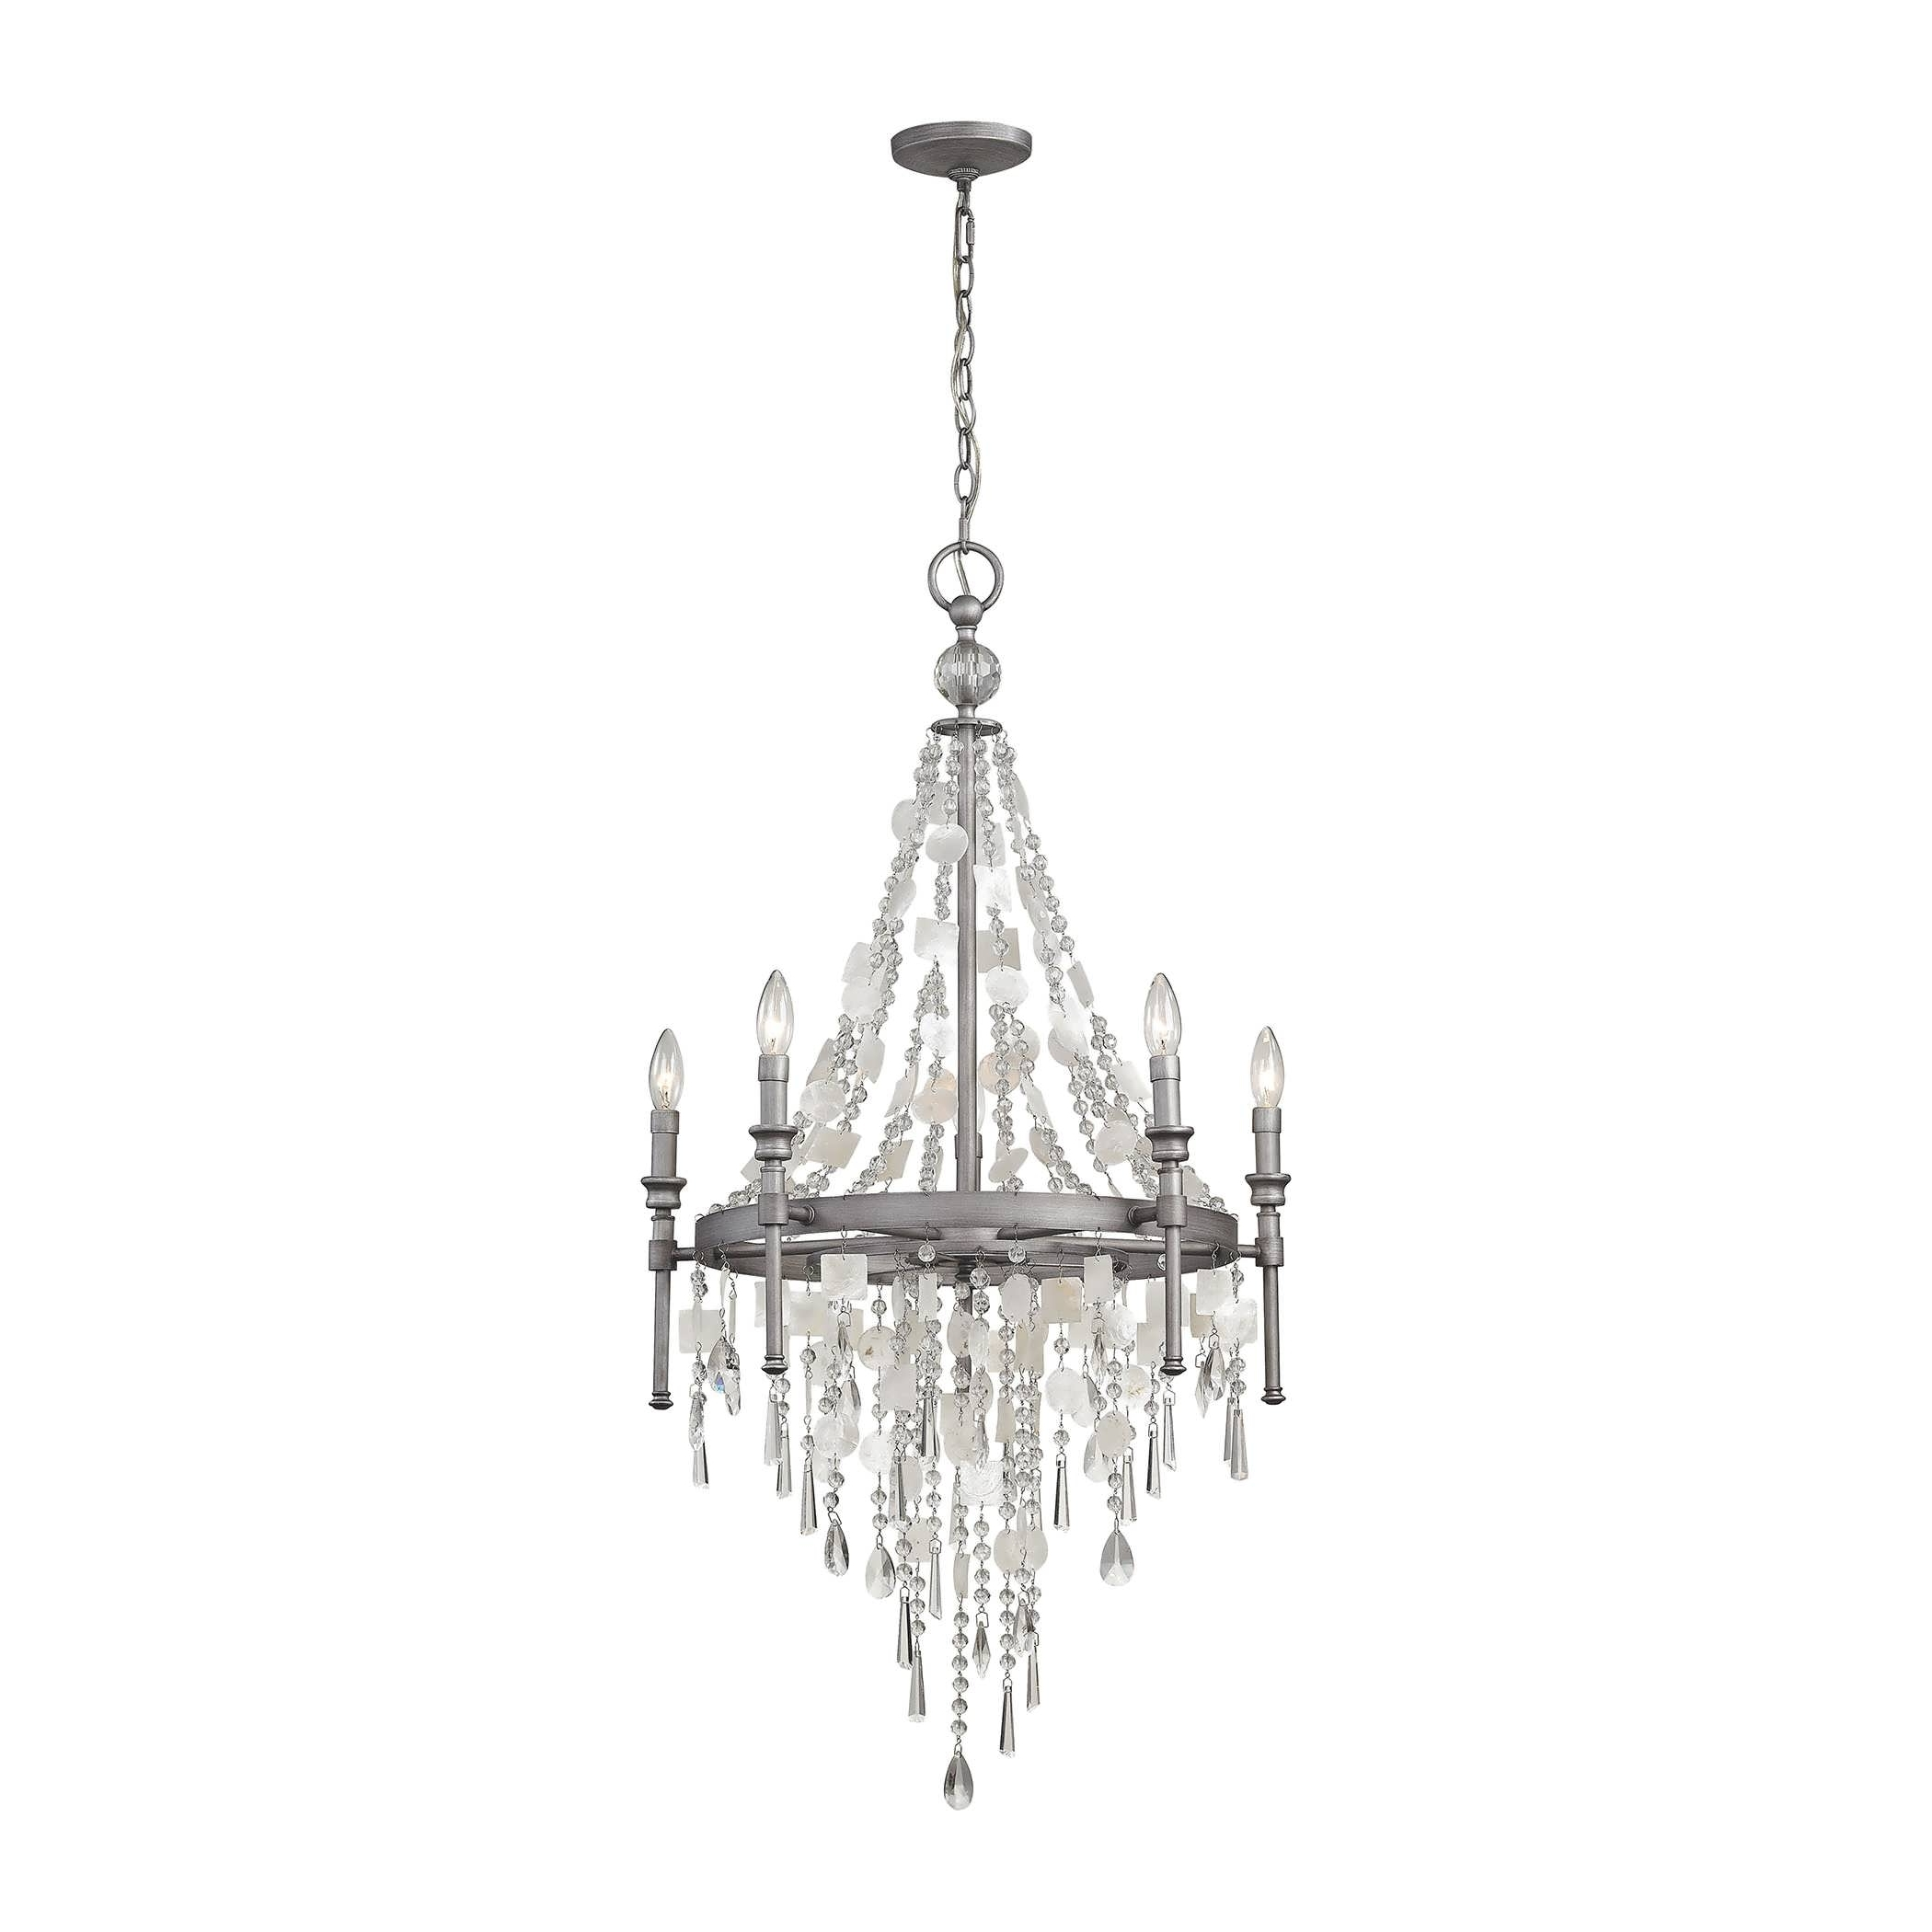 Well Known Small Crystal Chandelier Table Lamps Intended For Chandeliers Design : Amazing Affordable Chandeliers Small Crystal (View 20 of 20)